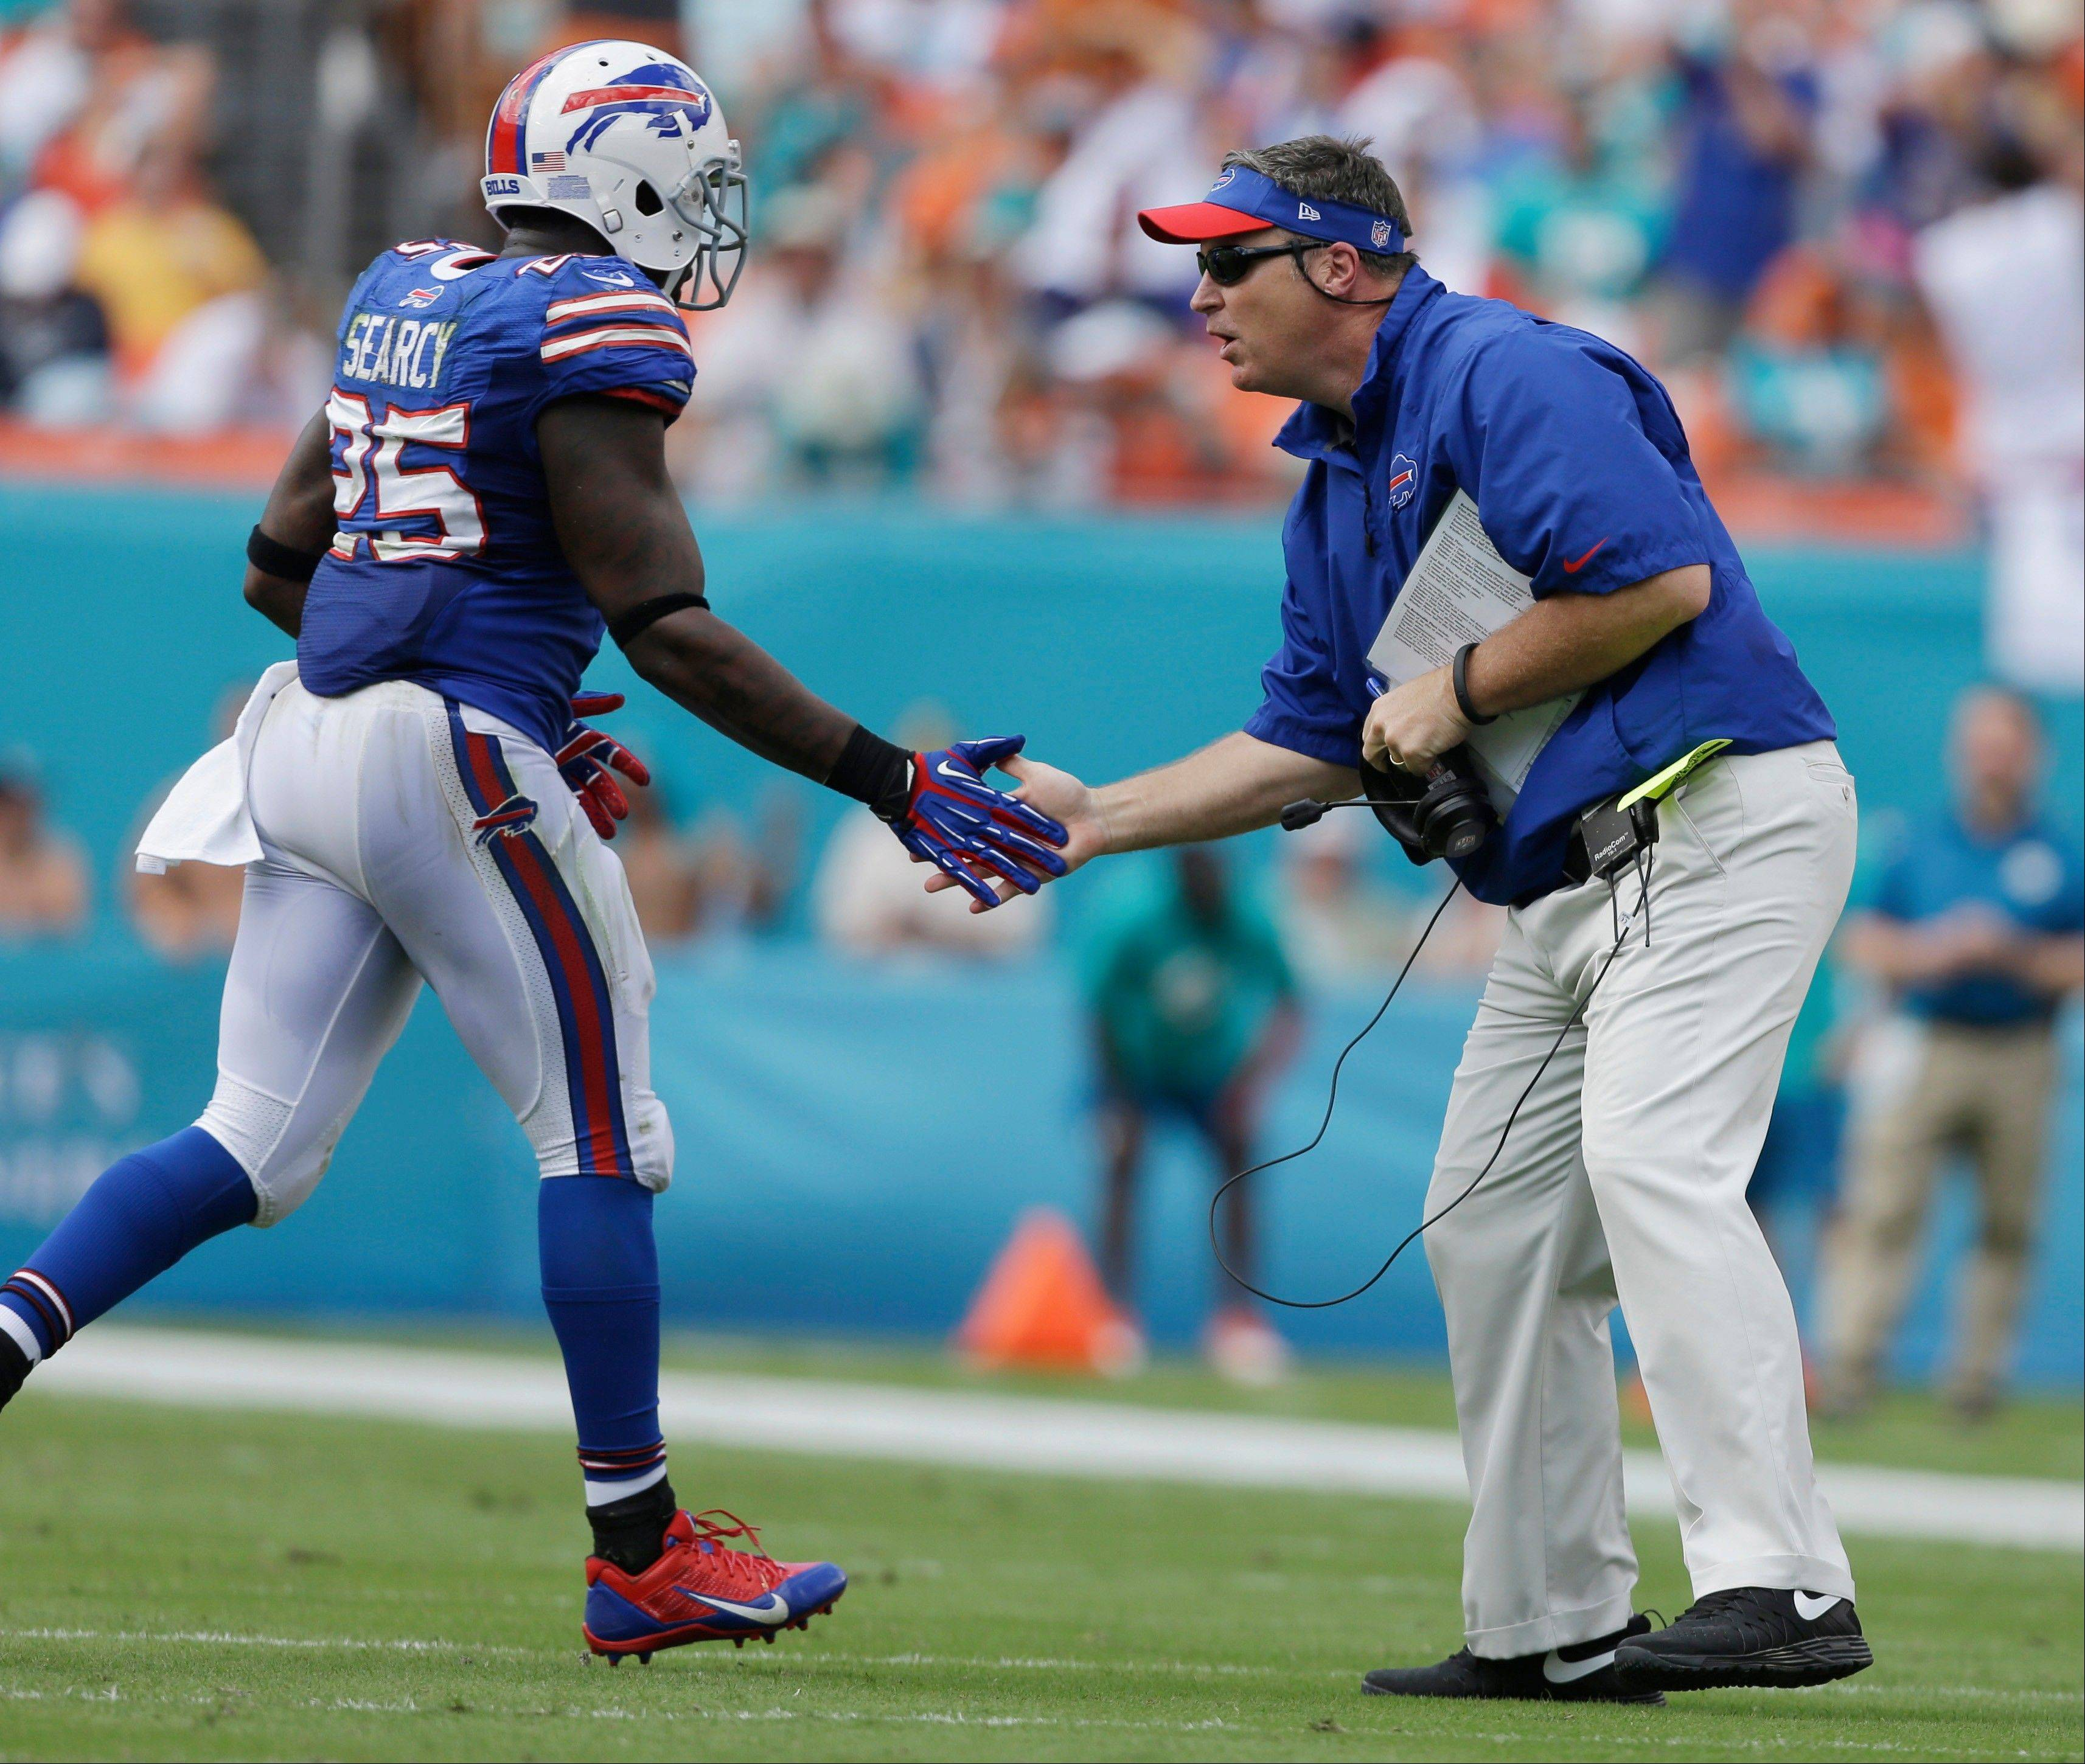 Buffalo Bills head coach Doug Marrone greets Buffalo Bills strong safety Da�Norris Searcy (25) after a play during the first half of an NFL football game against the Miami Dolphins, Sunday, Oct. 20, 2013, in Miami Gardens, Fla.